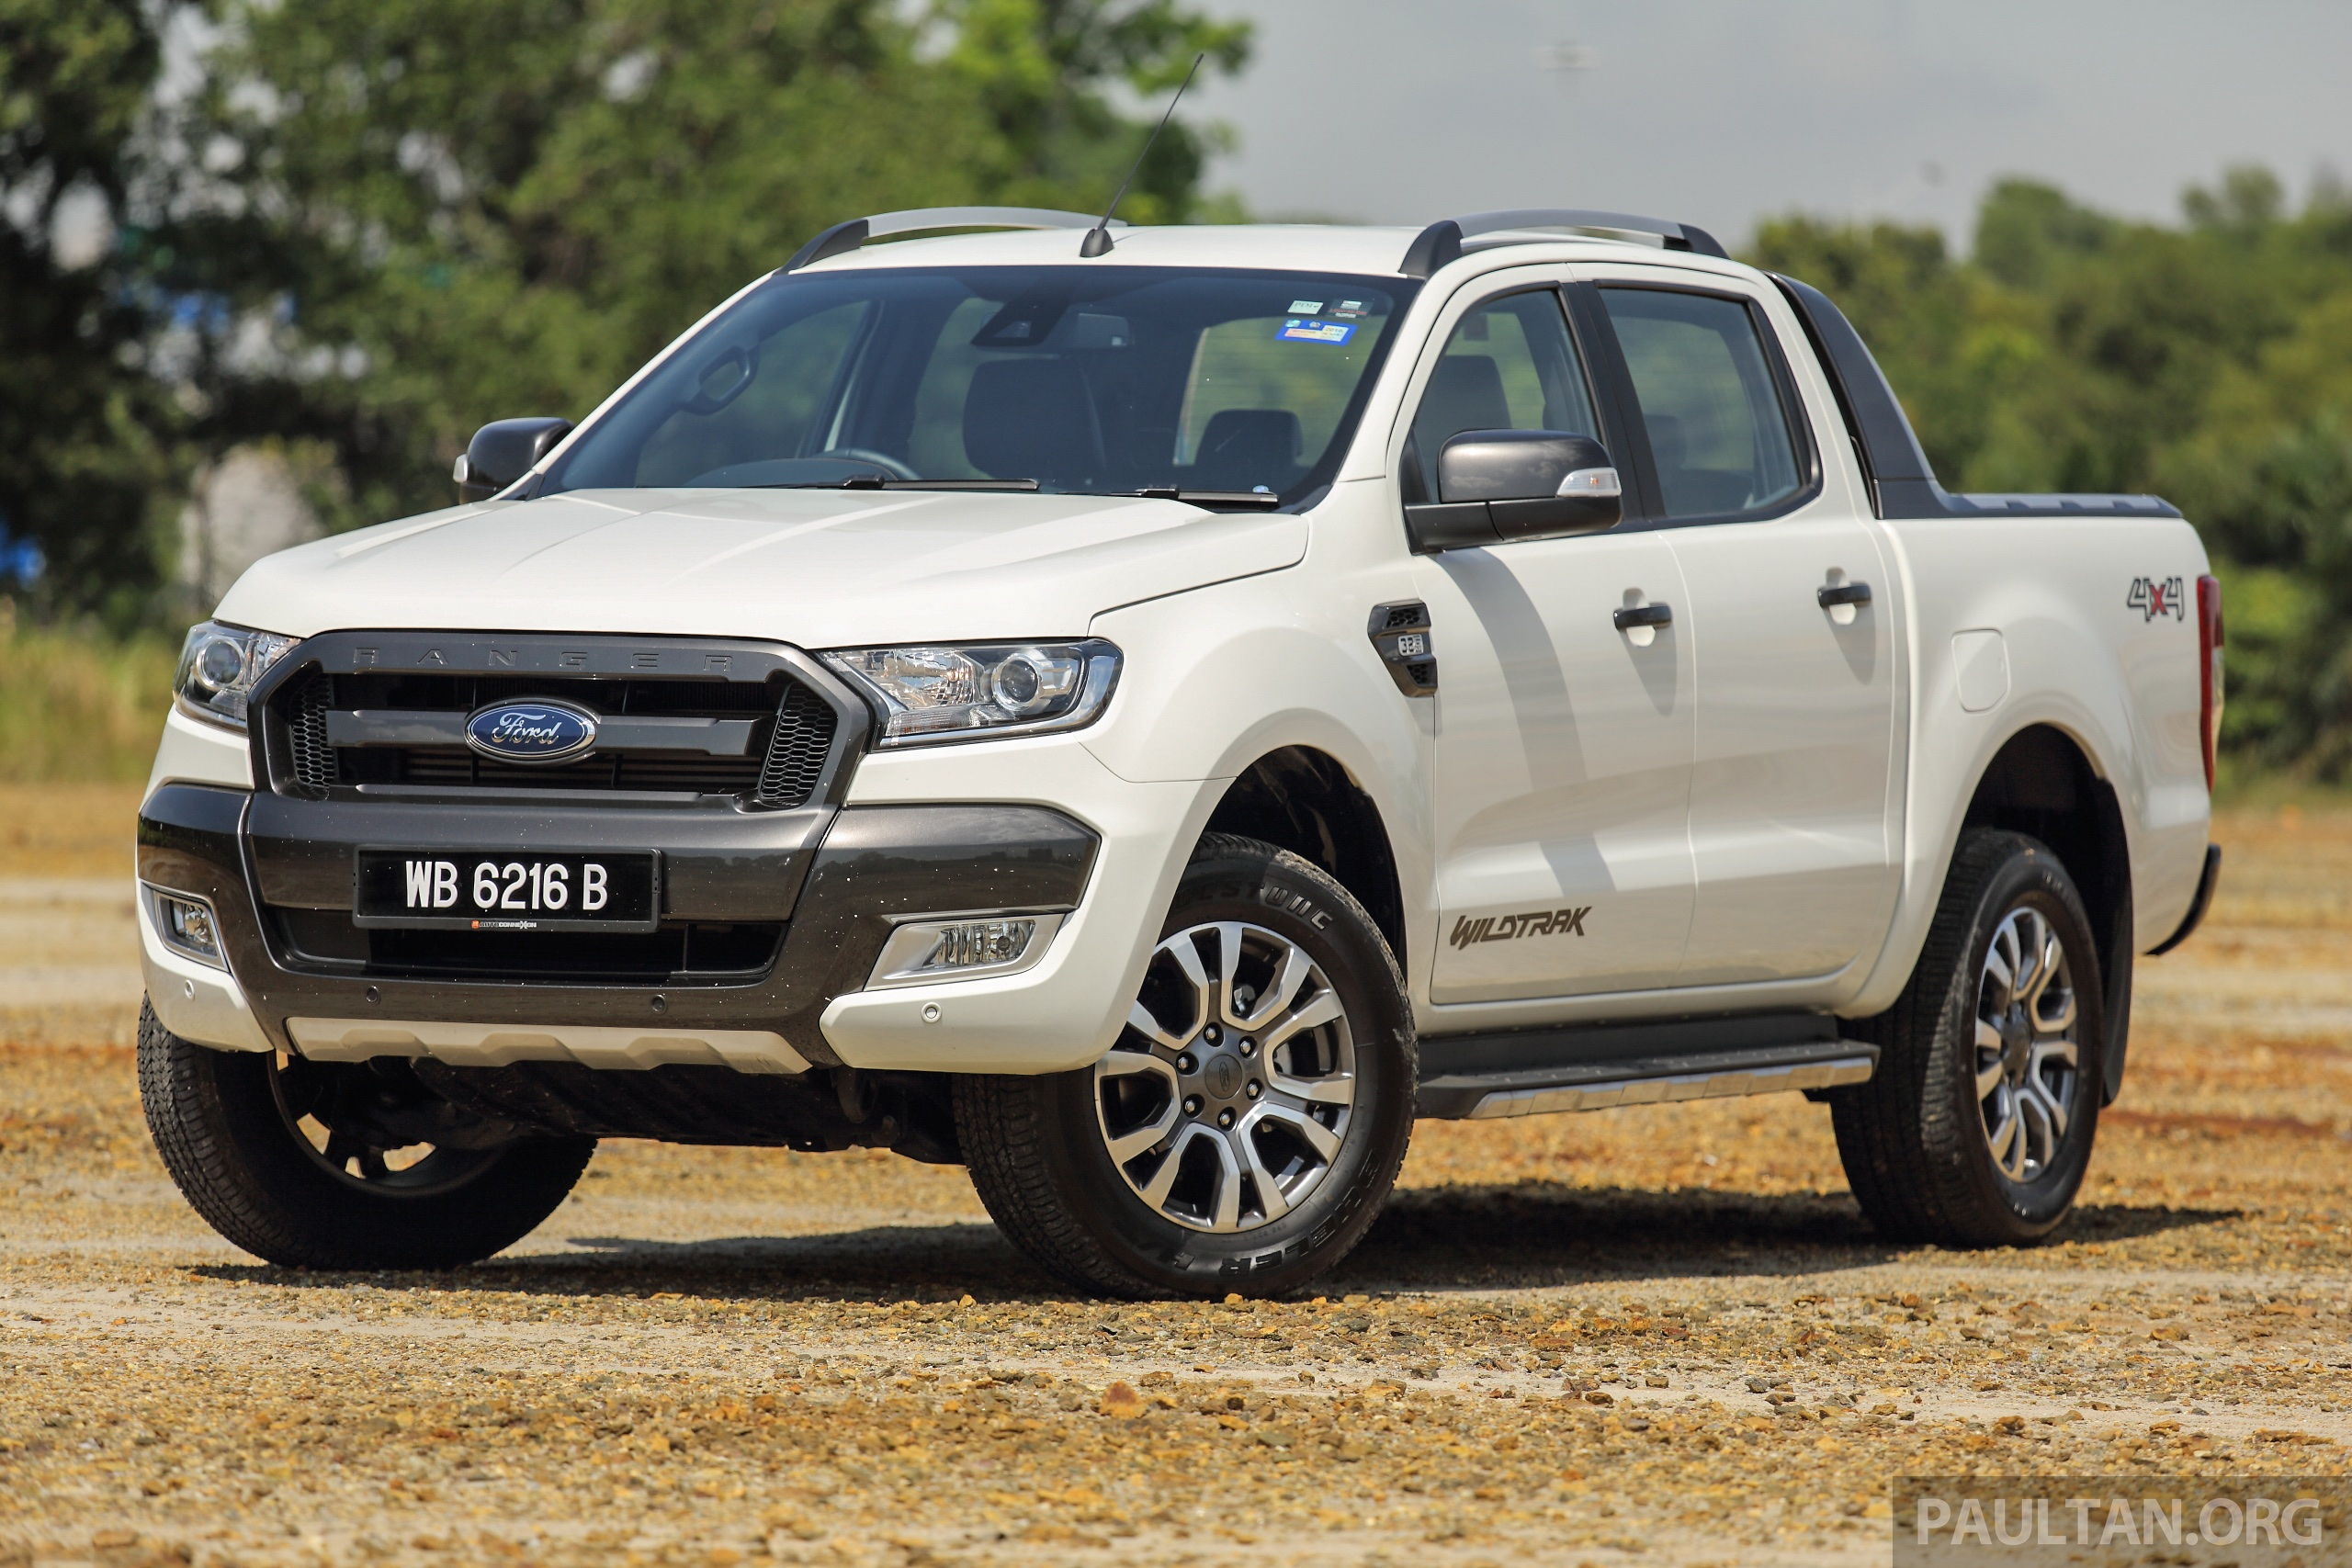 2016 ford ranger prices revised 2 2 3 2 xlt variants up between rm850 rm920 3 2 wildtrak up by rm5 300